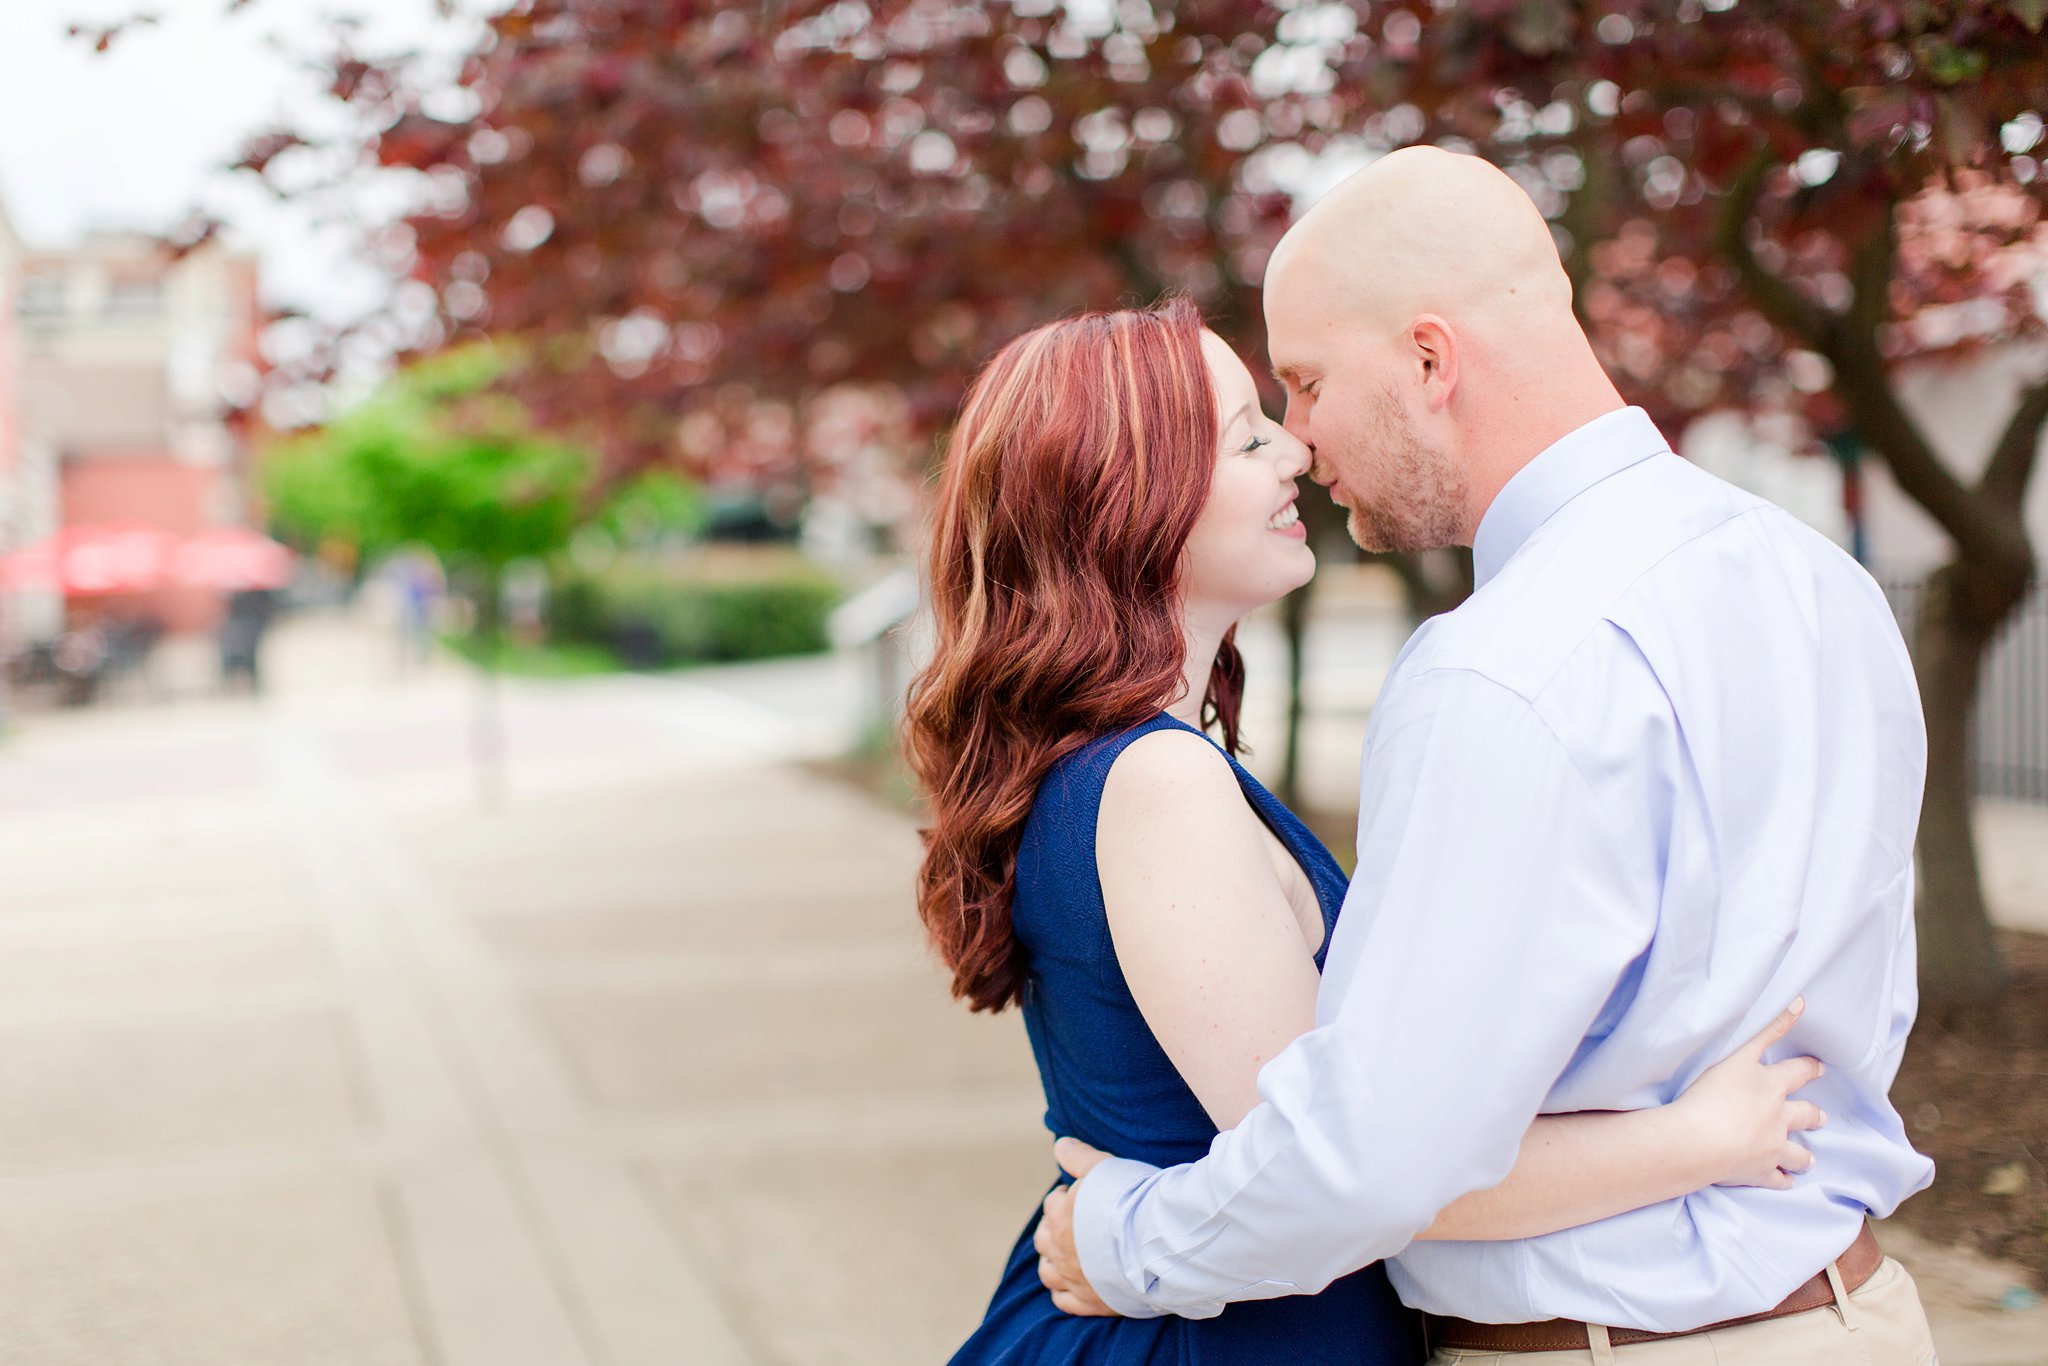 Old Town Manassas Battlefield Engagement Photos Virginia Wedding Photographer Jessica & Jason-34.jpg